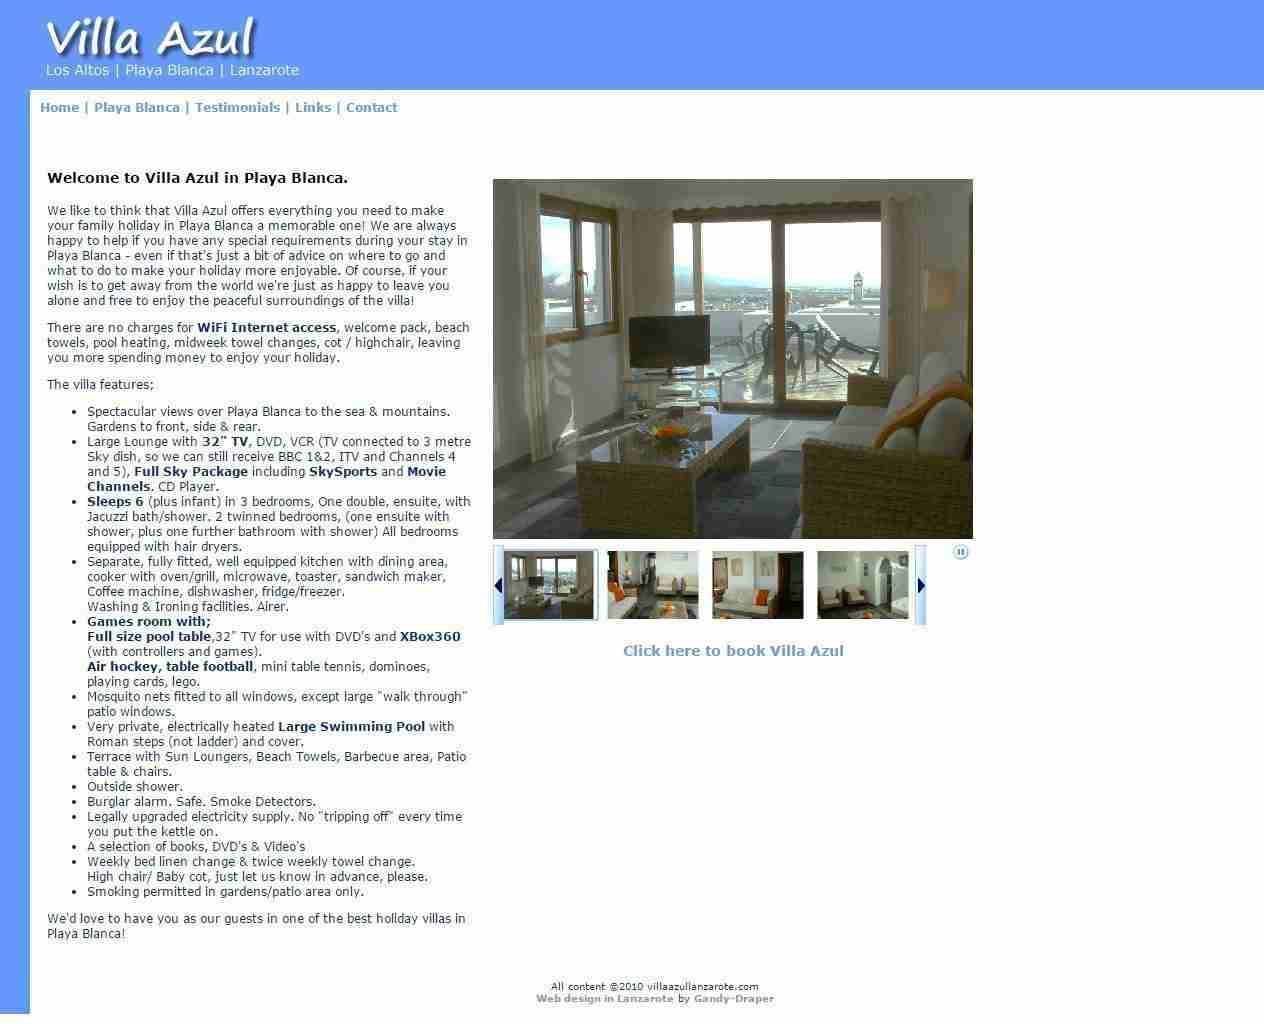 Spain Web Design and more by Gandy-Draper | I cannot praise them enough